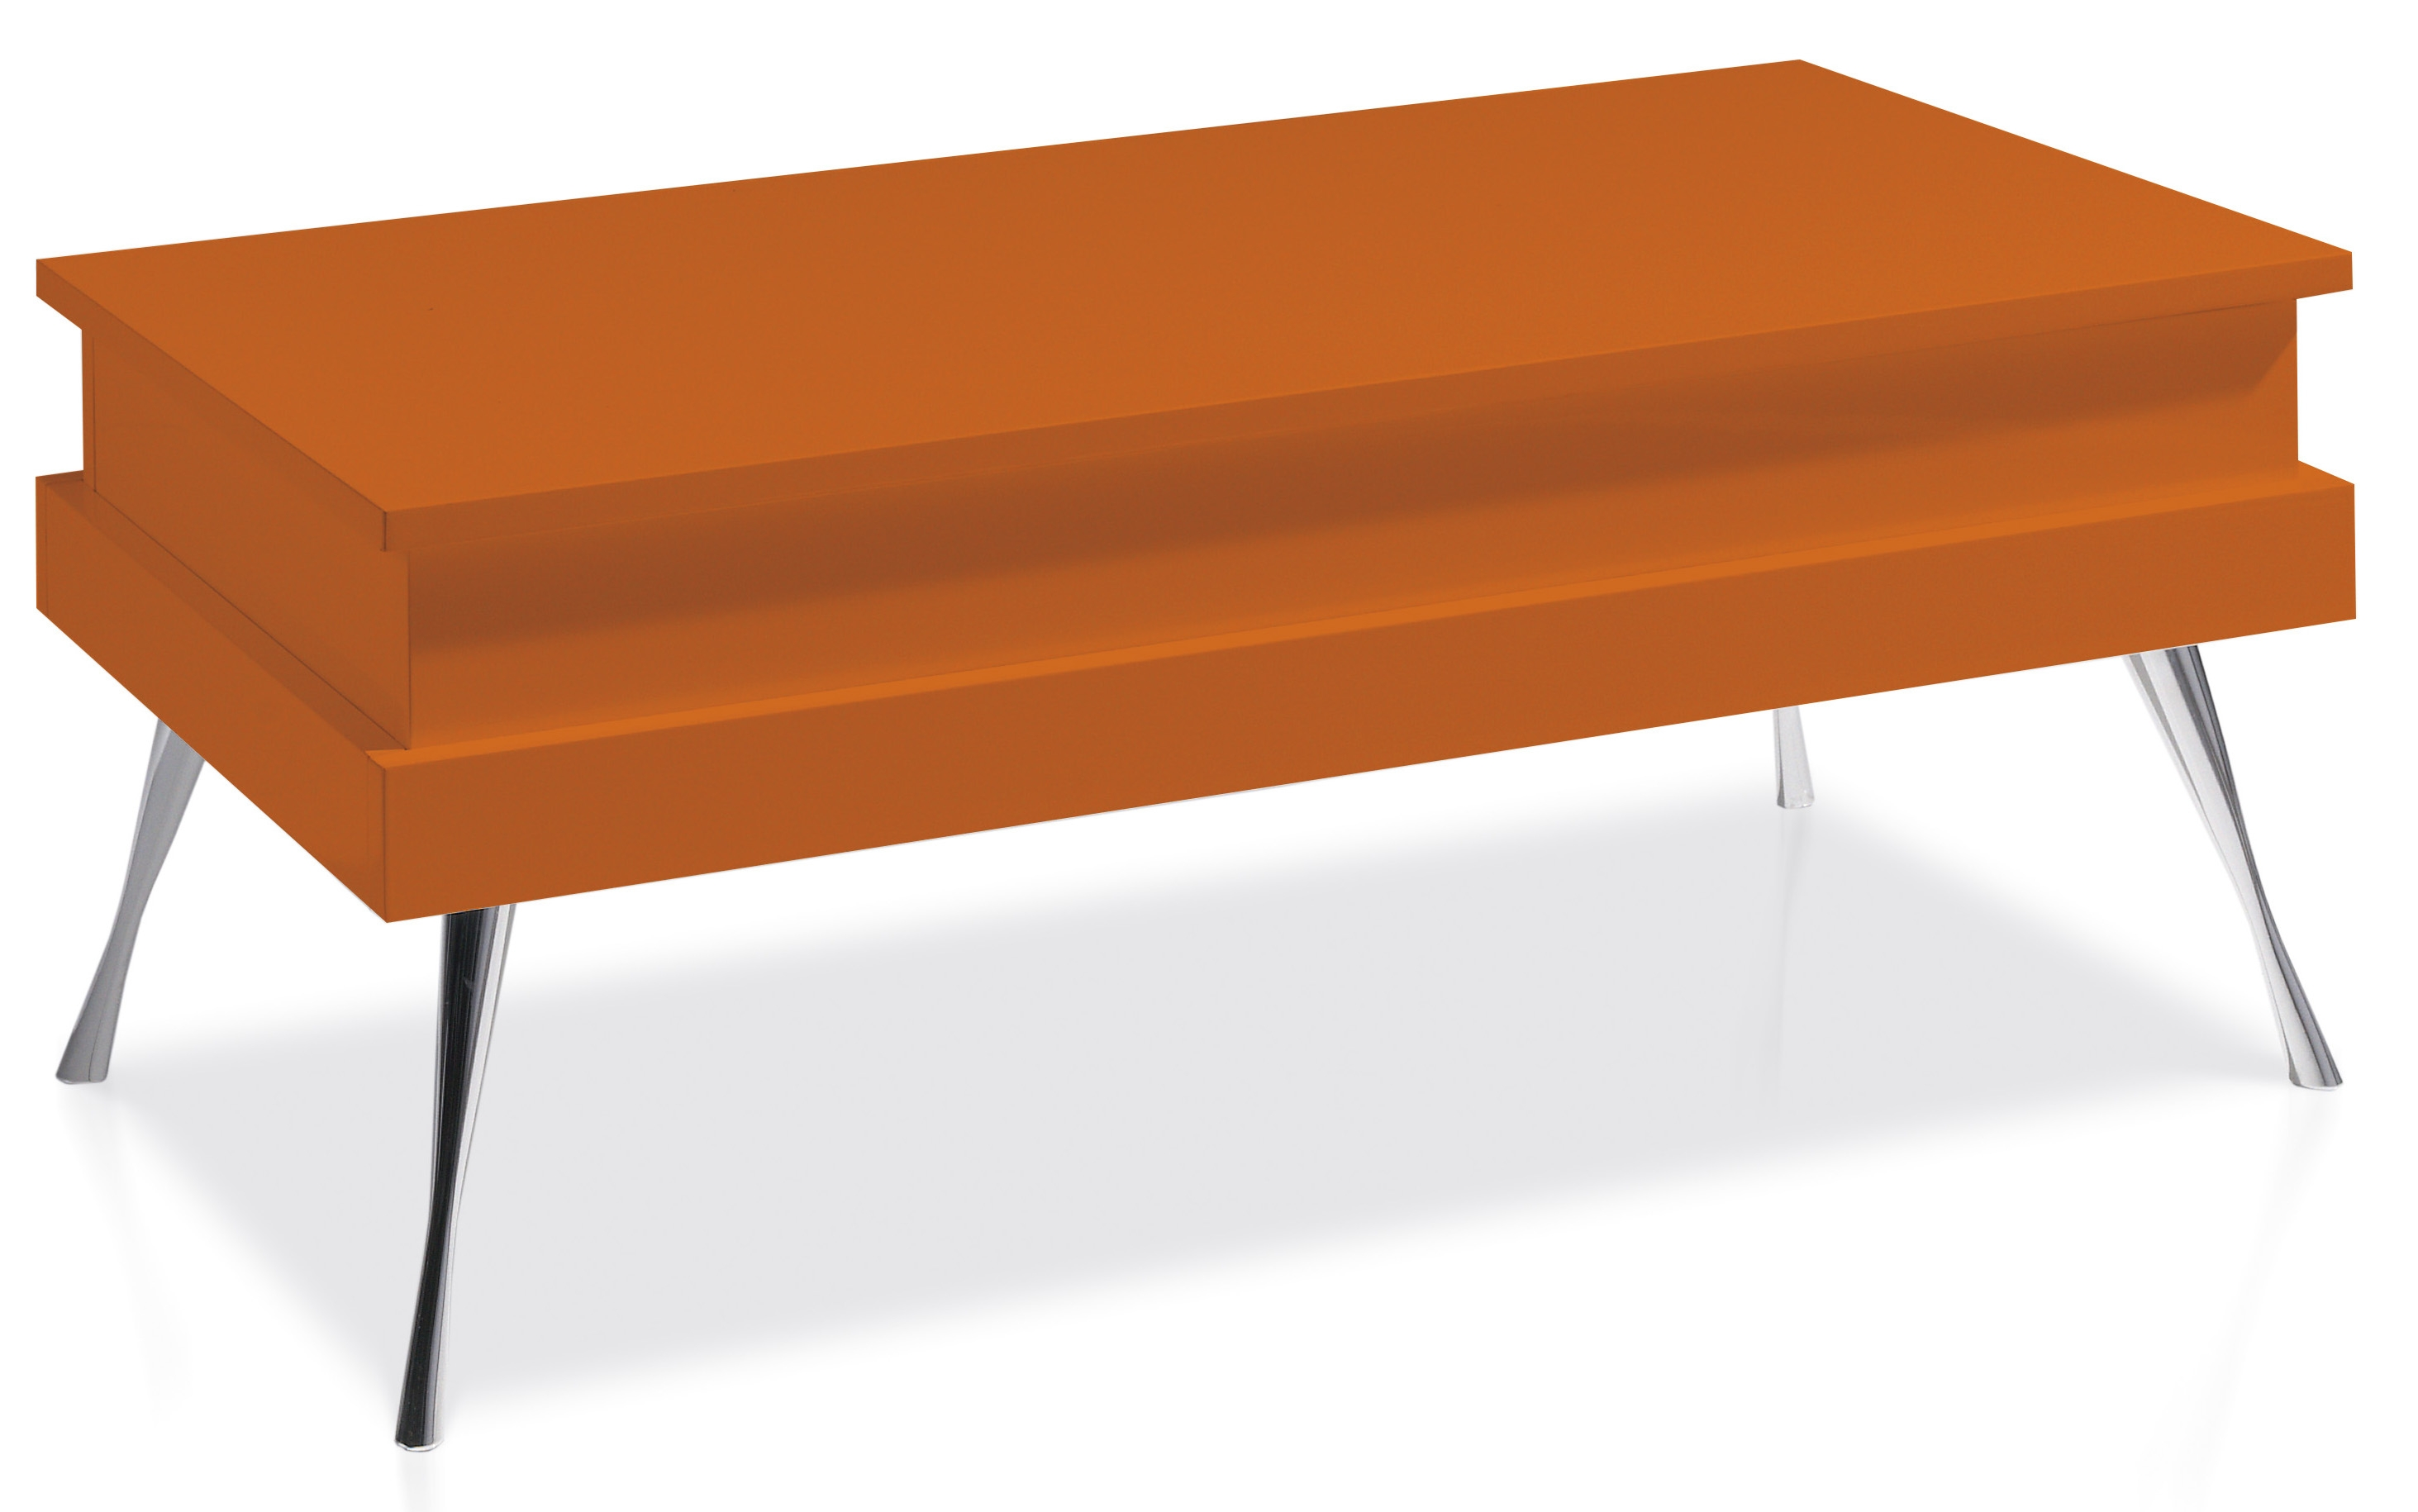 Table basse relevable laqu e orange pied acier chrom - Pied table basse acier ...